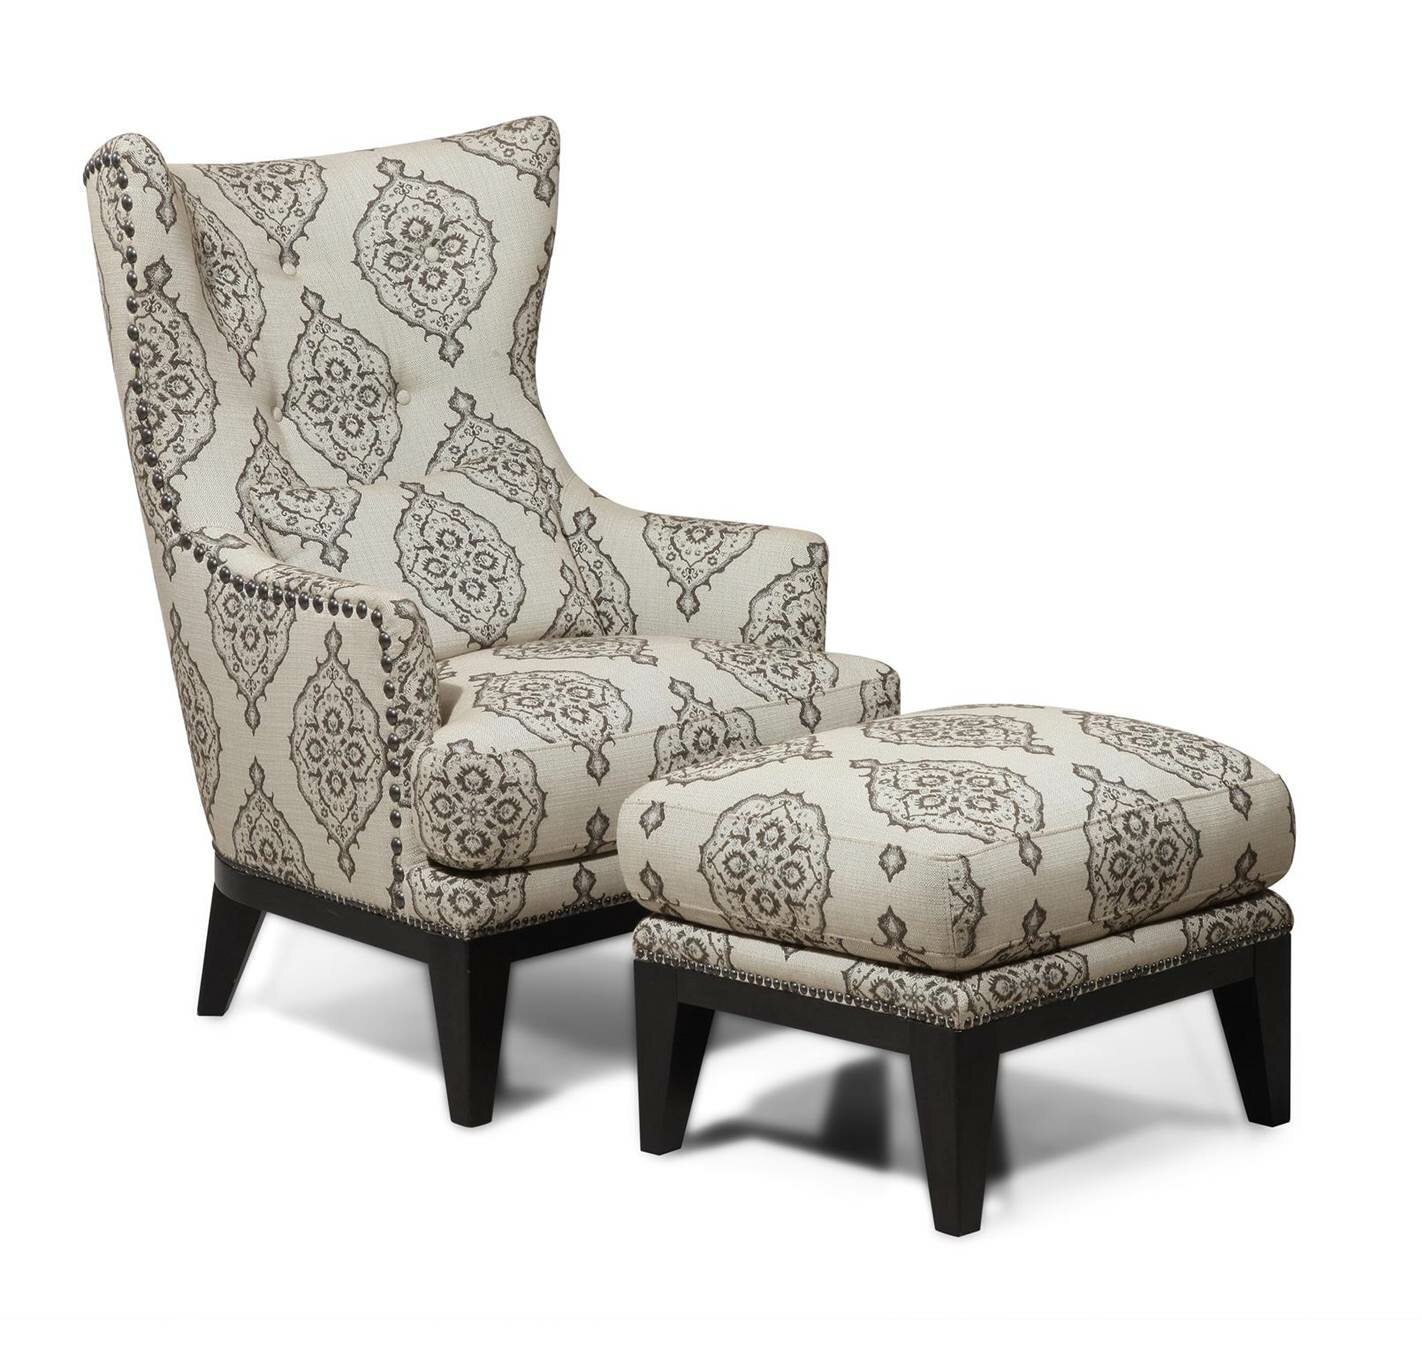 Darby Home Co Baltic Wingback Chair And Ottoman U0026 Reviews   Wayfair